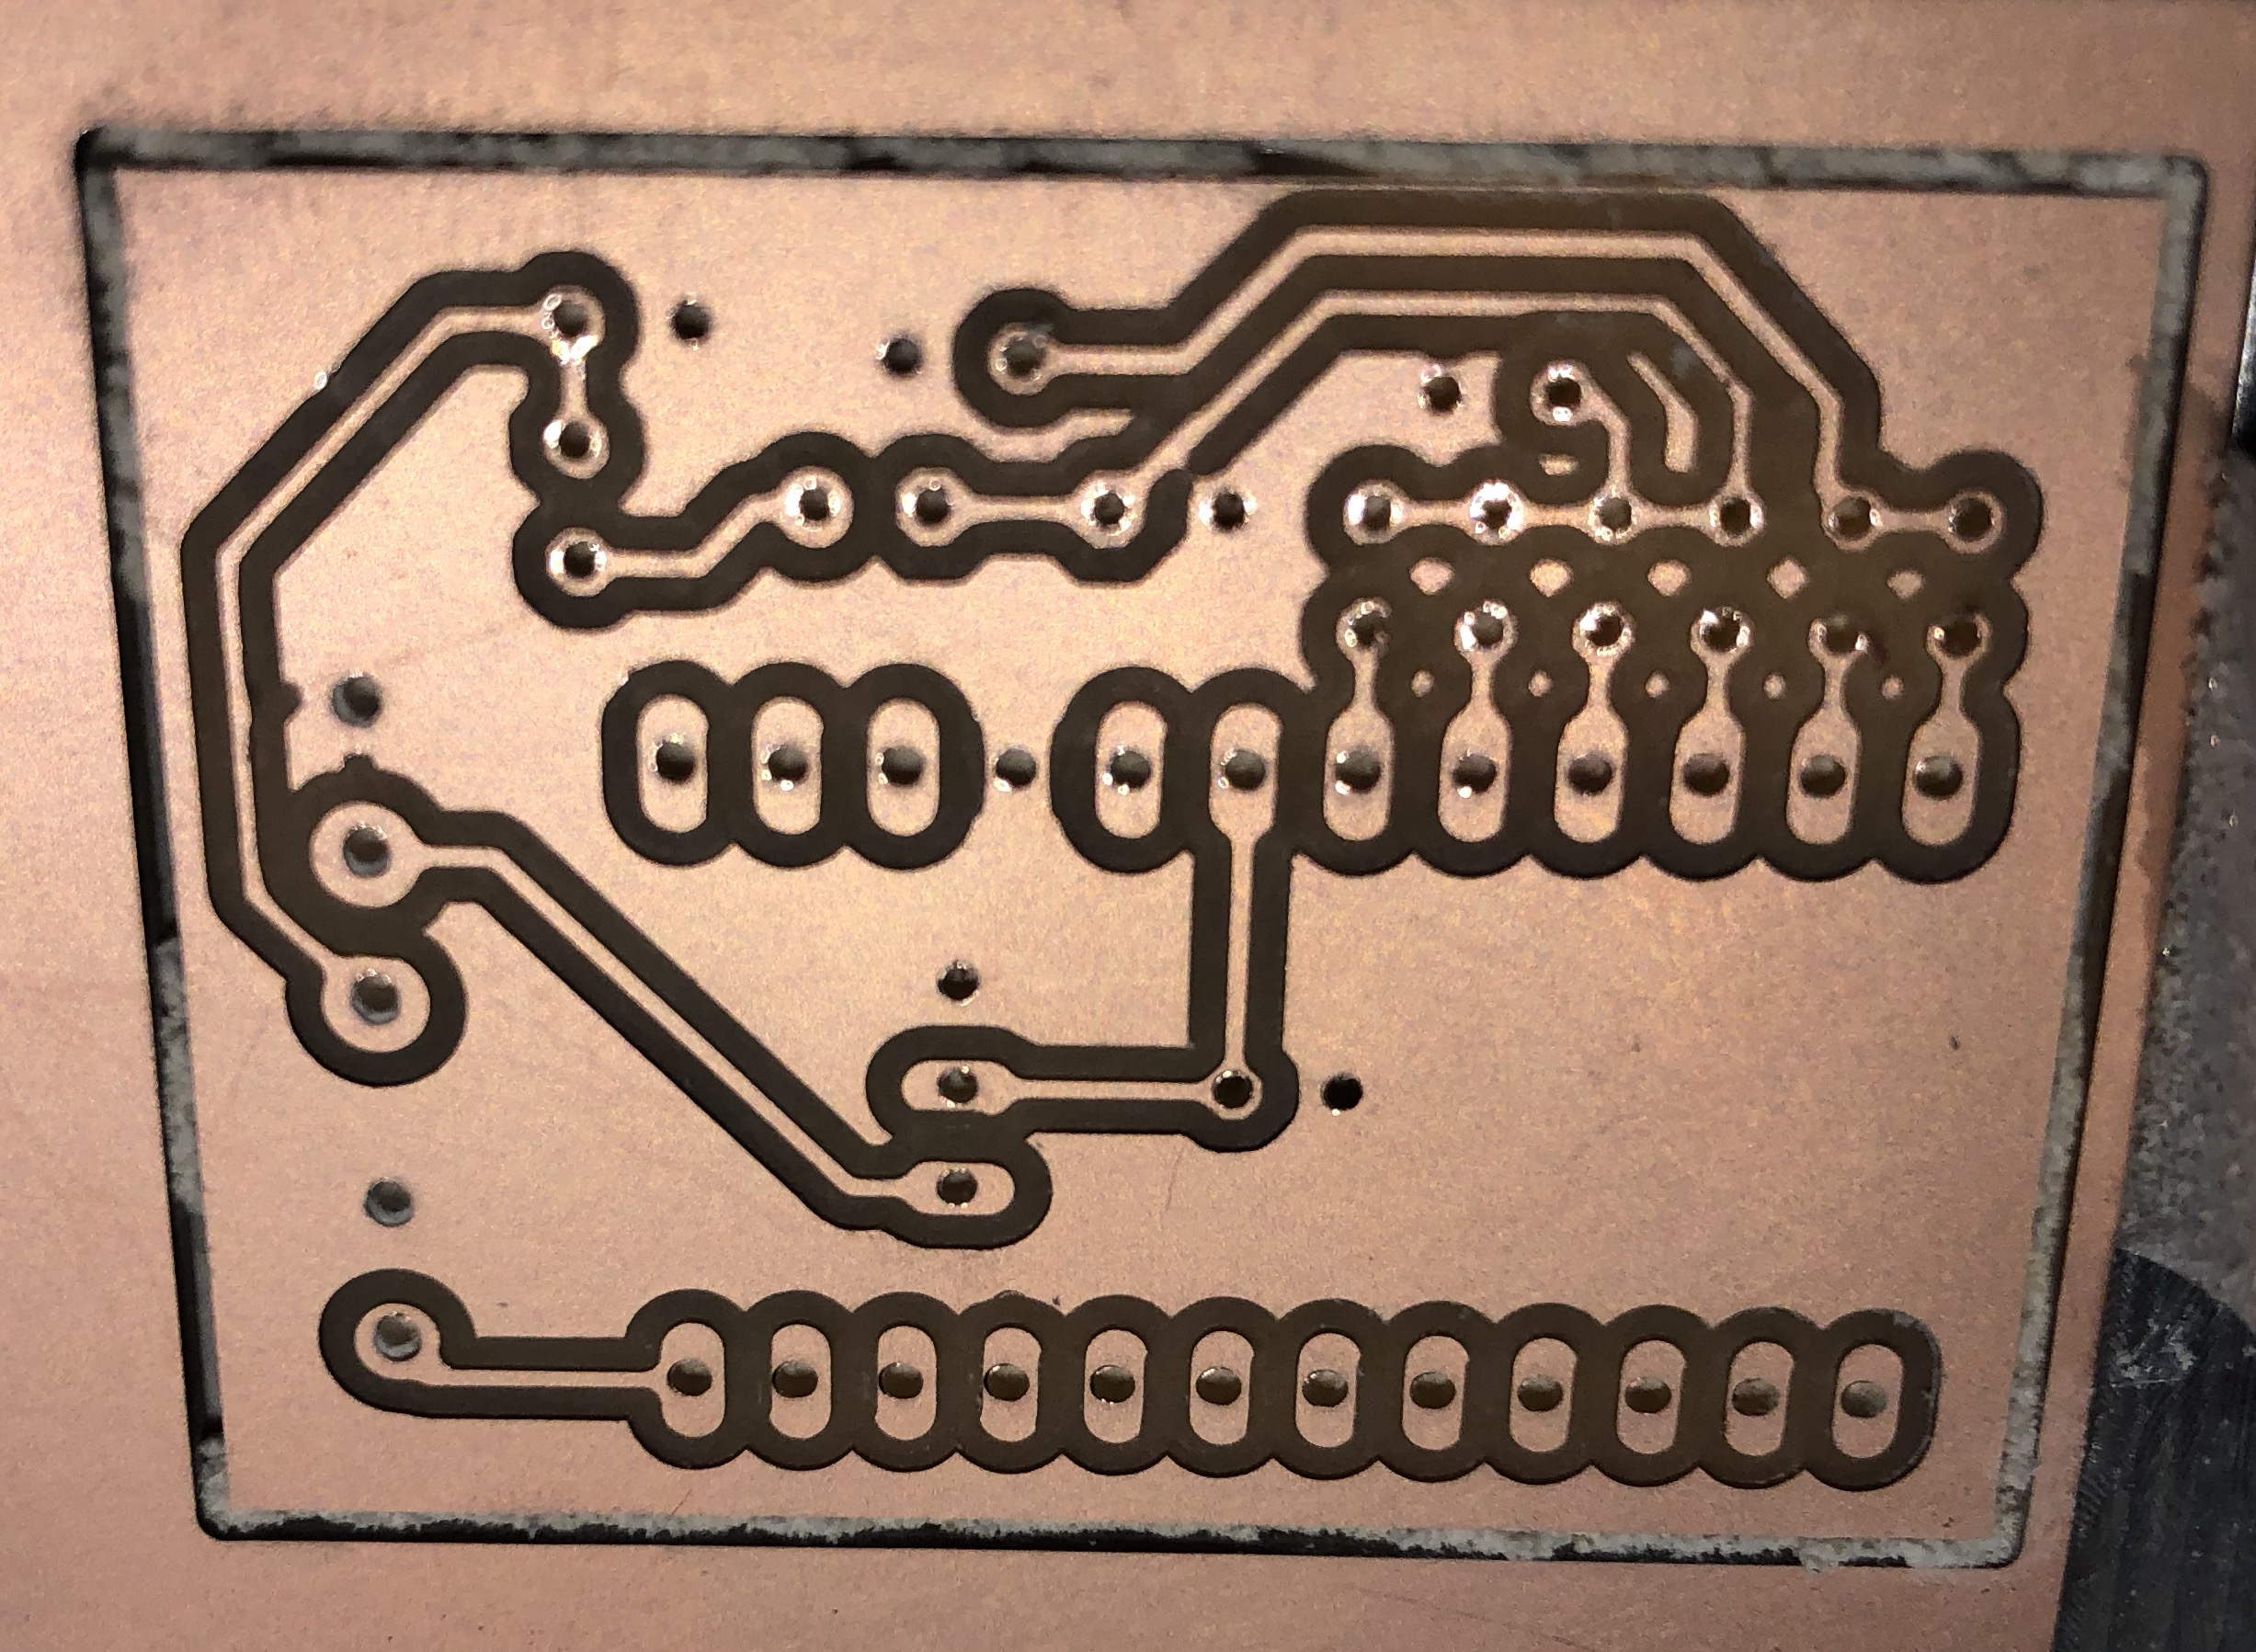 prototype-pcb.png